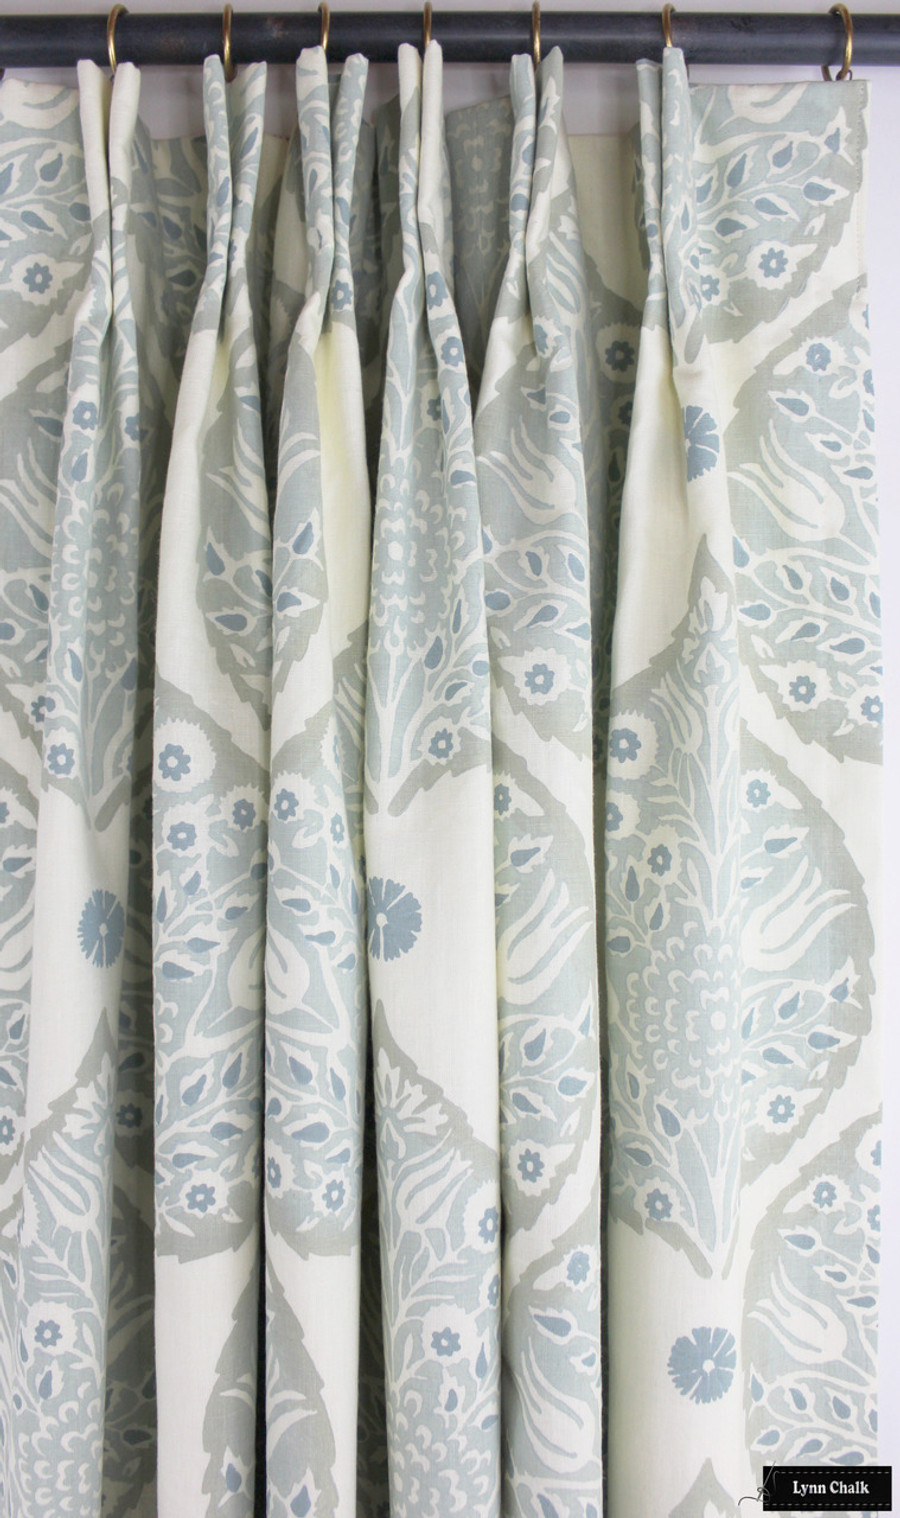 Galbraith & Paul Lotus Drapes (Shown in Mineral on Cream-comes in many colors ...